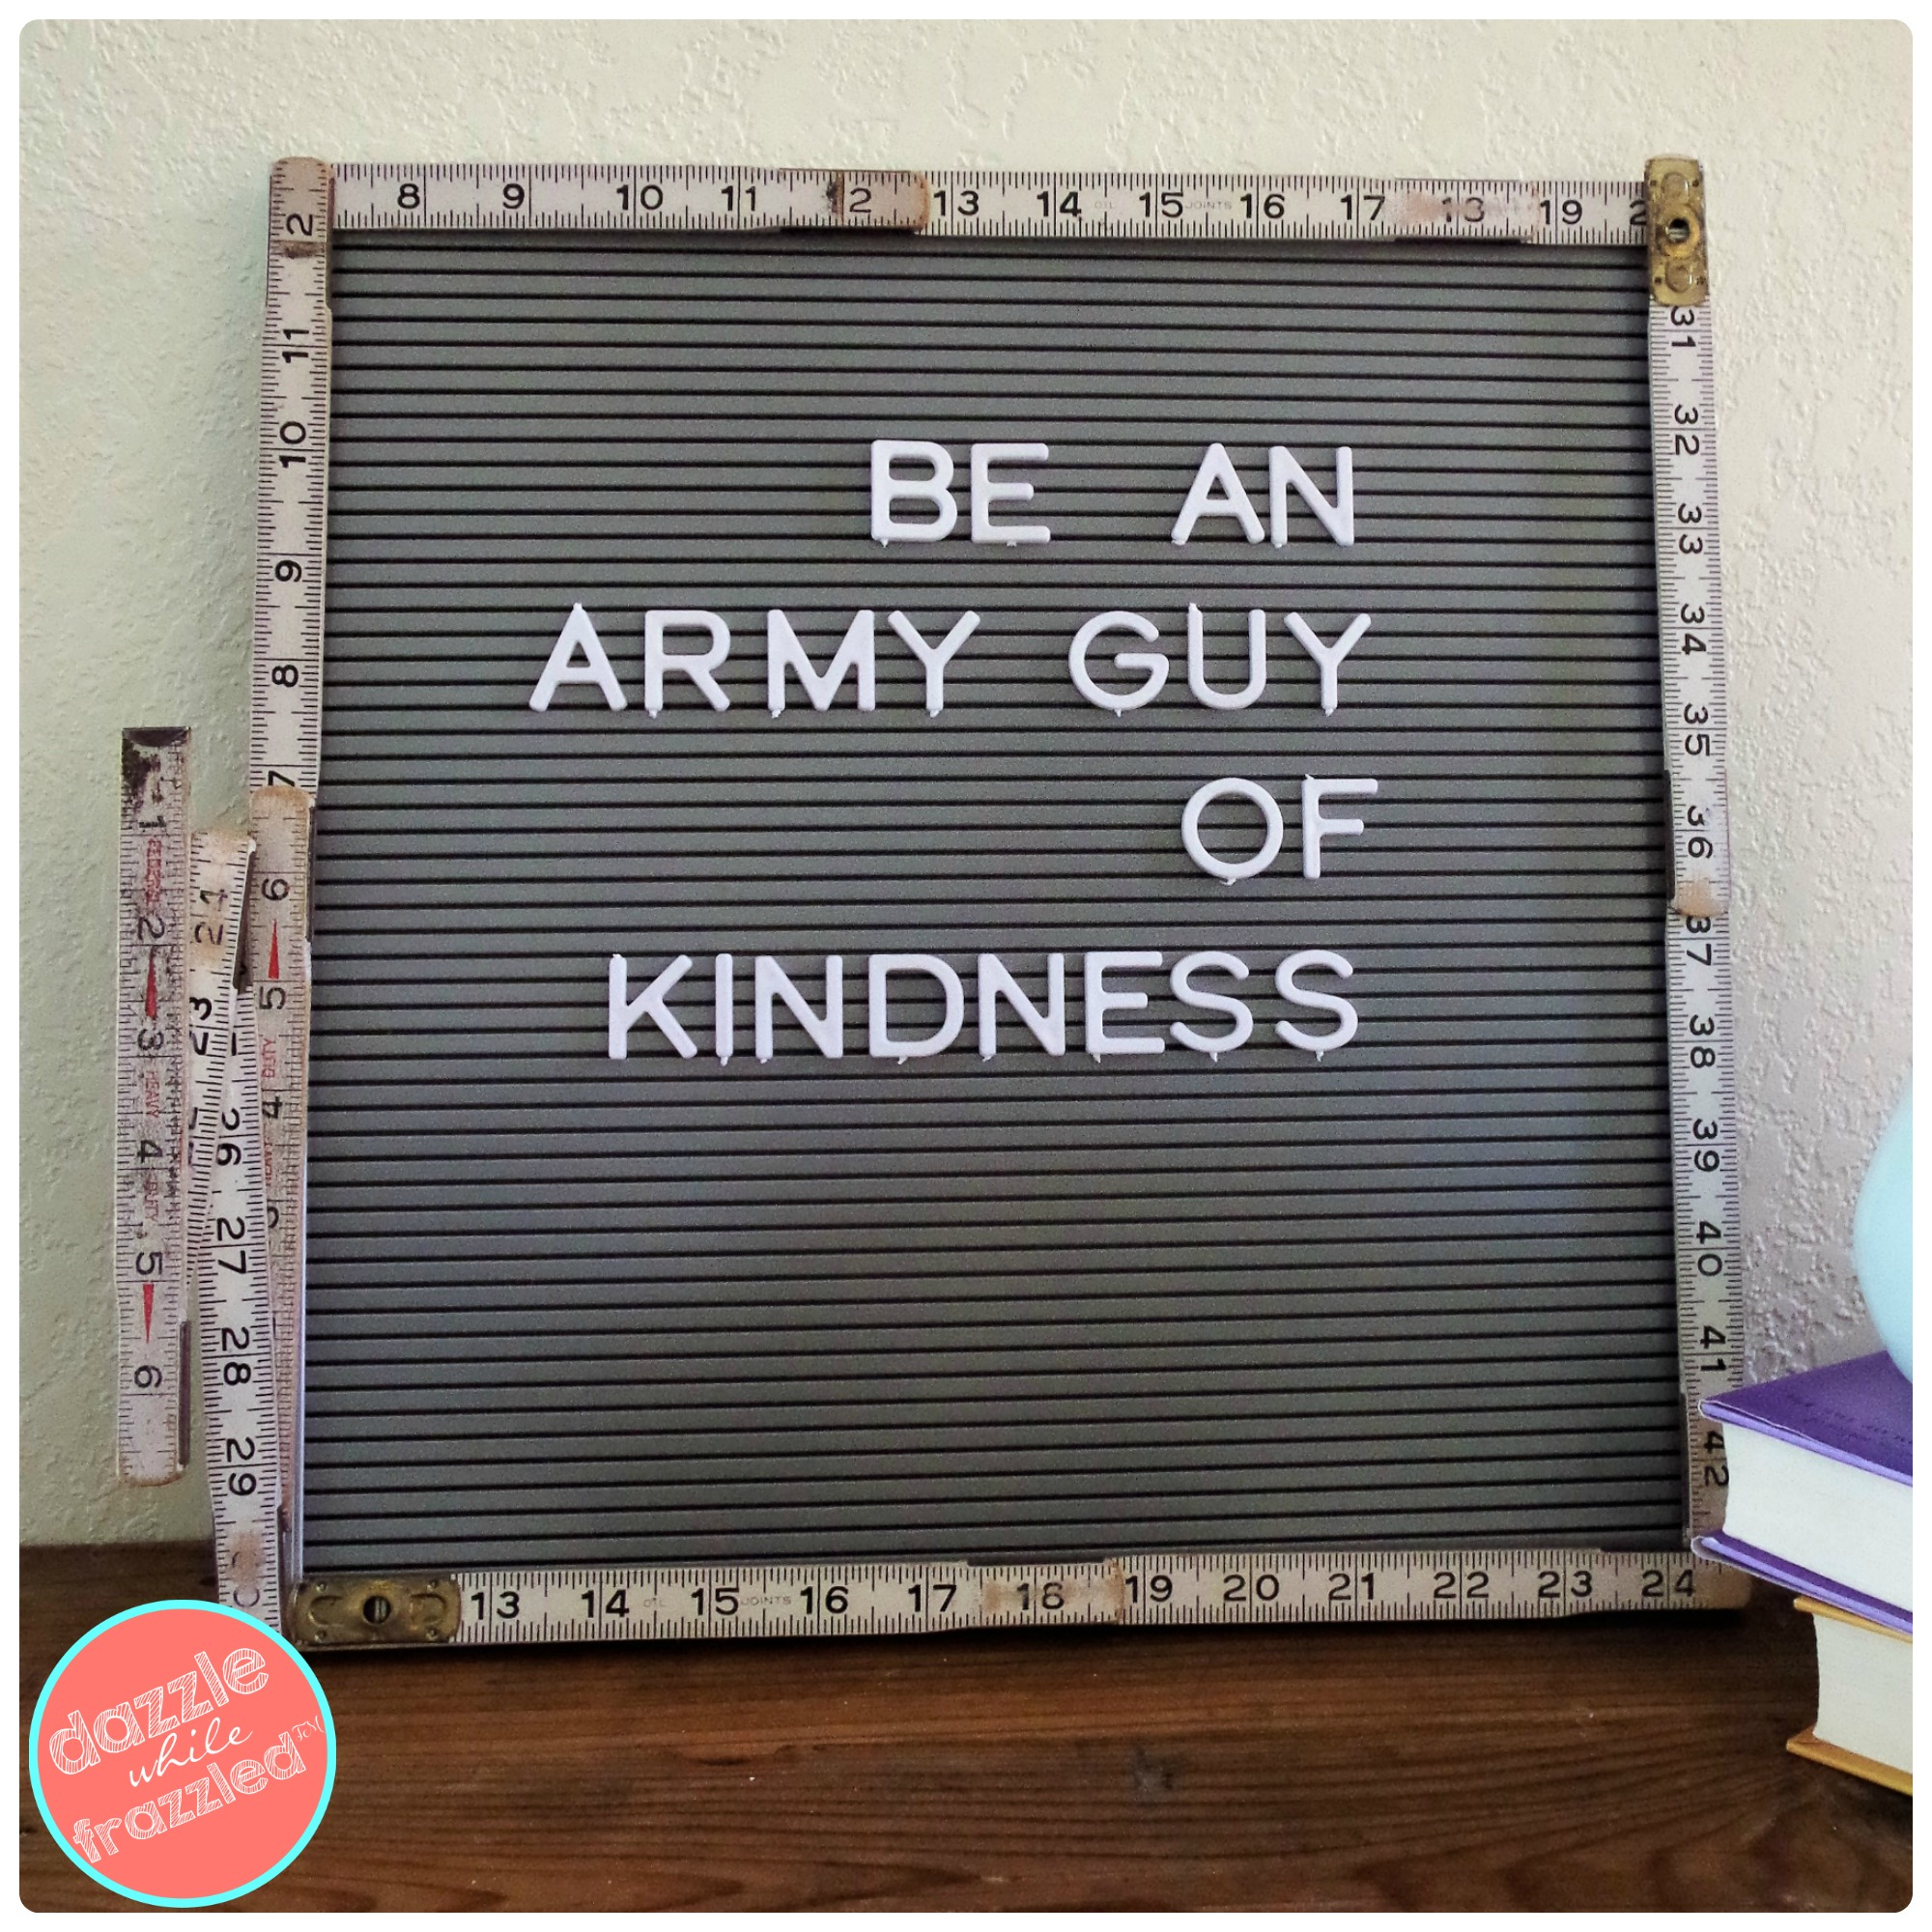 How To Make Vintage Letter Board For Home Decor Dazzle While Frazzled